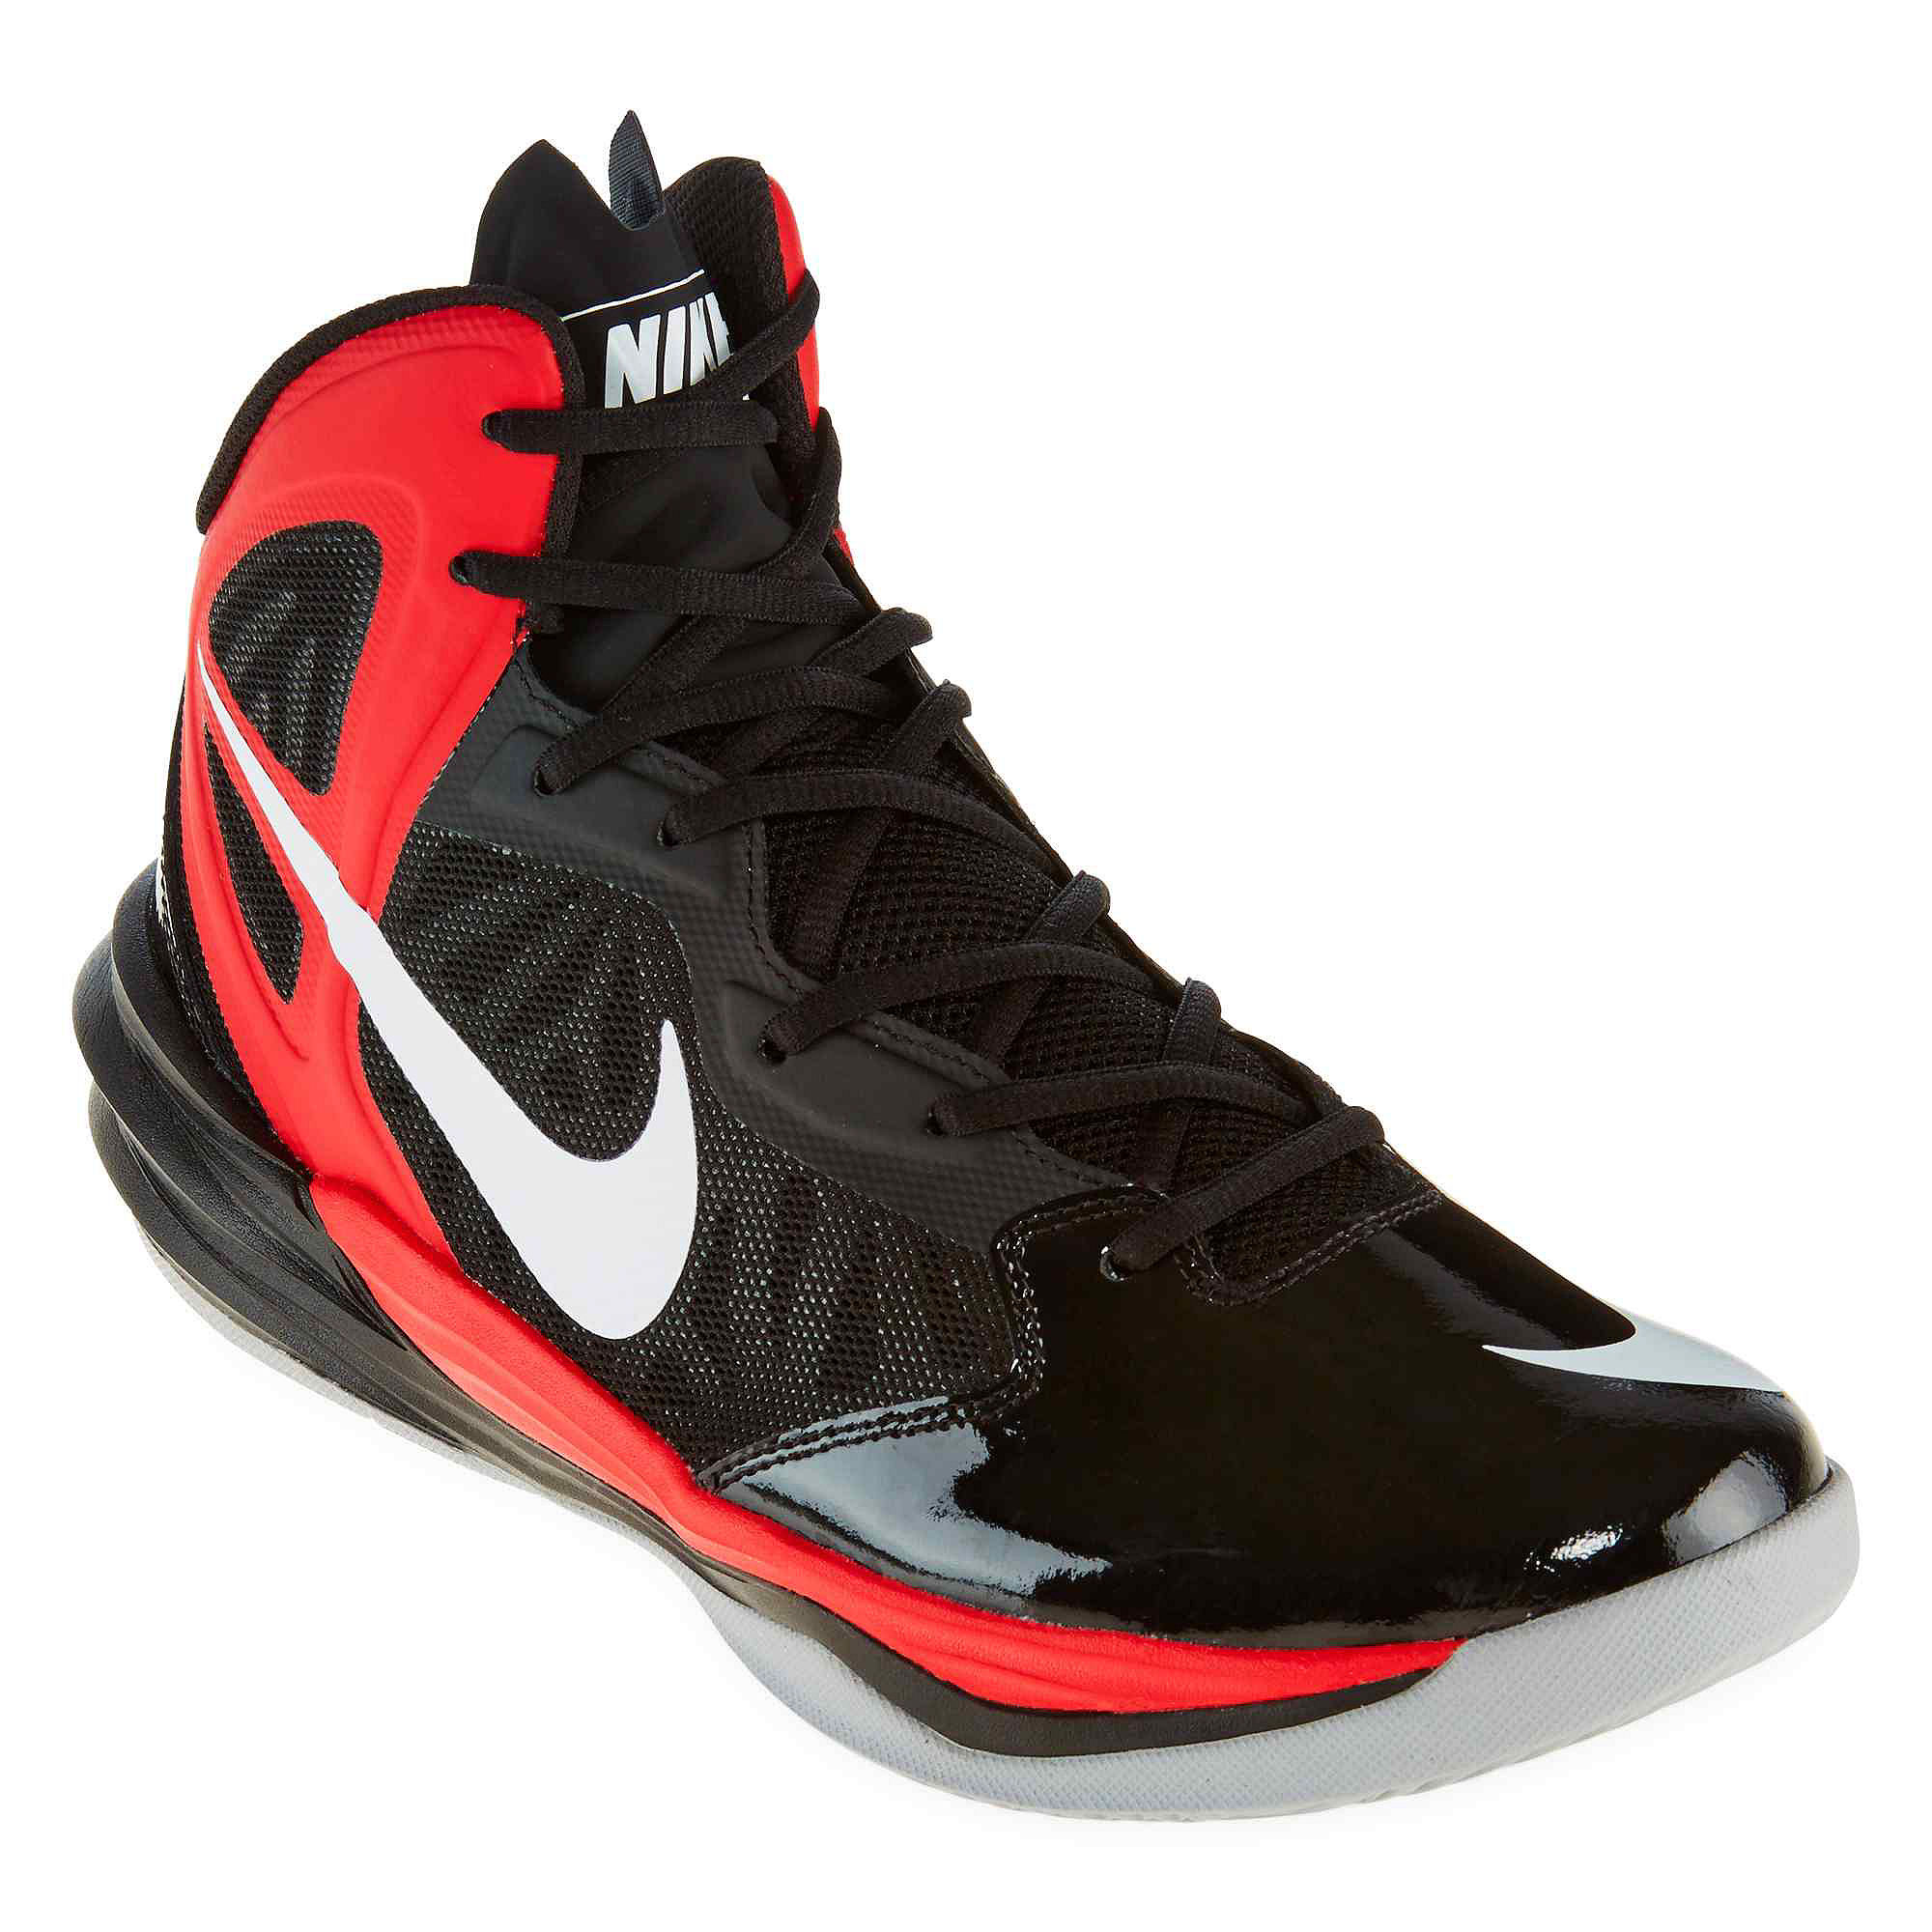 on sale c82bb cdacf UPC 884776372284 - Nike Prime Hype DF Mens Basketball Shoes ...